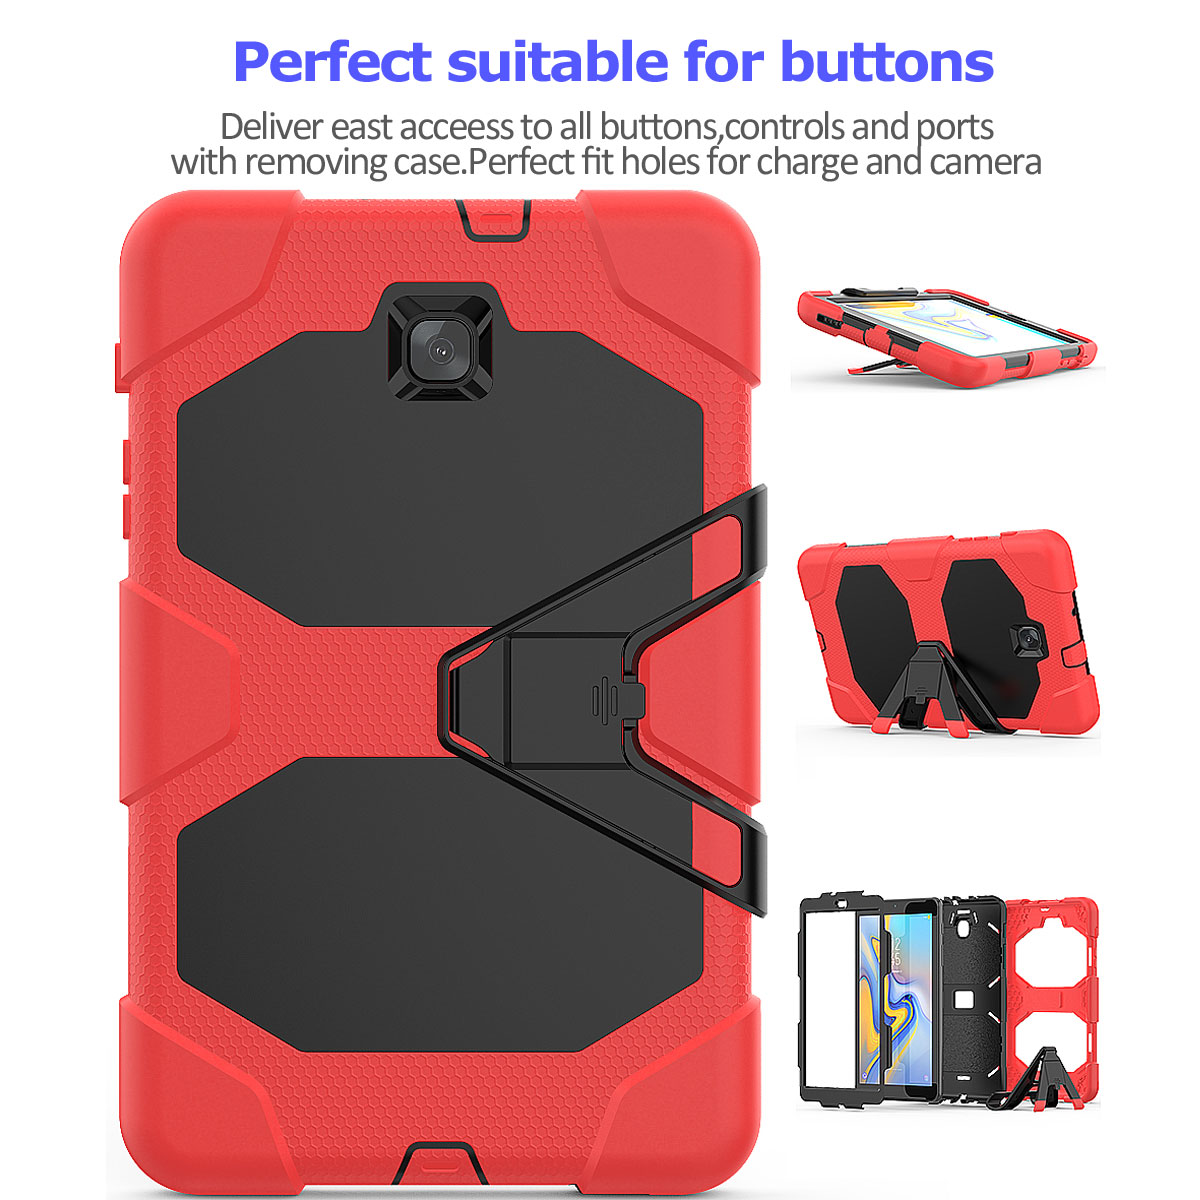 Rugged-Hard-Case-For-Samsung-Galaxy-Tab-A-8-0-2018-SM-T387-with-Screen-Protector thumbnail 67